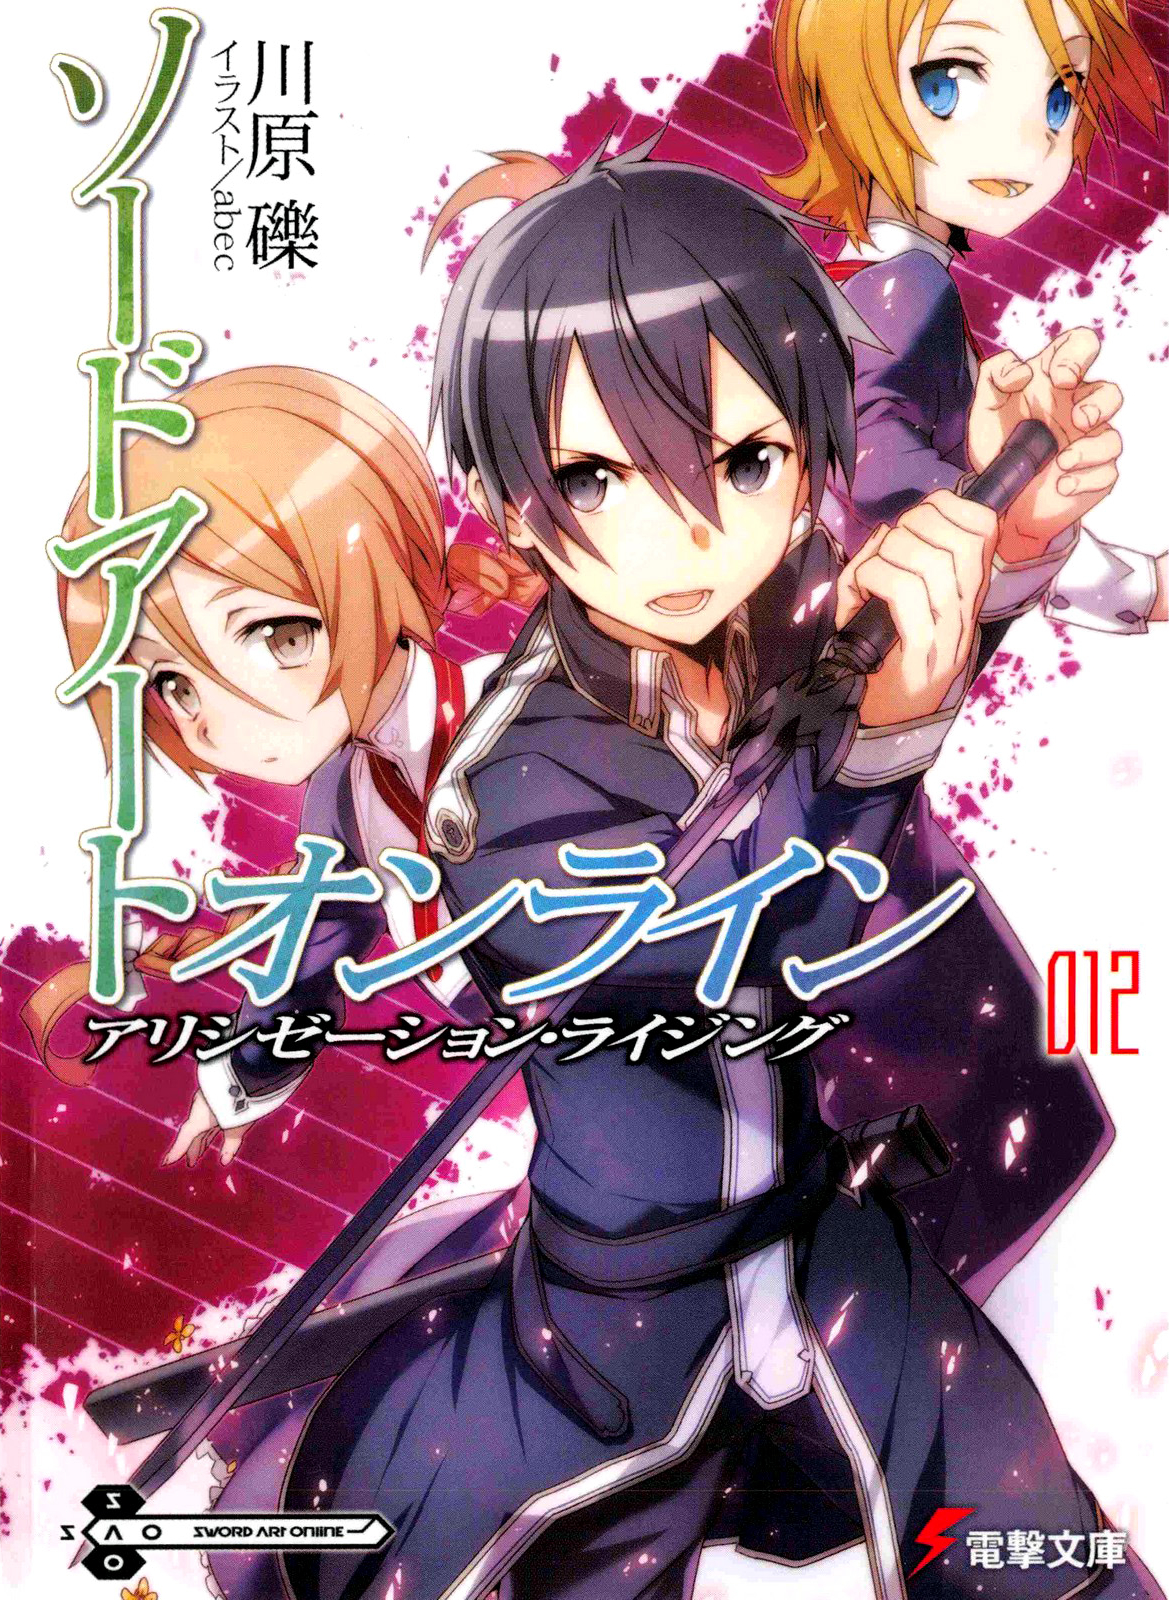 Sword Art Vol. 12: Alicization Rising Translation now available